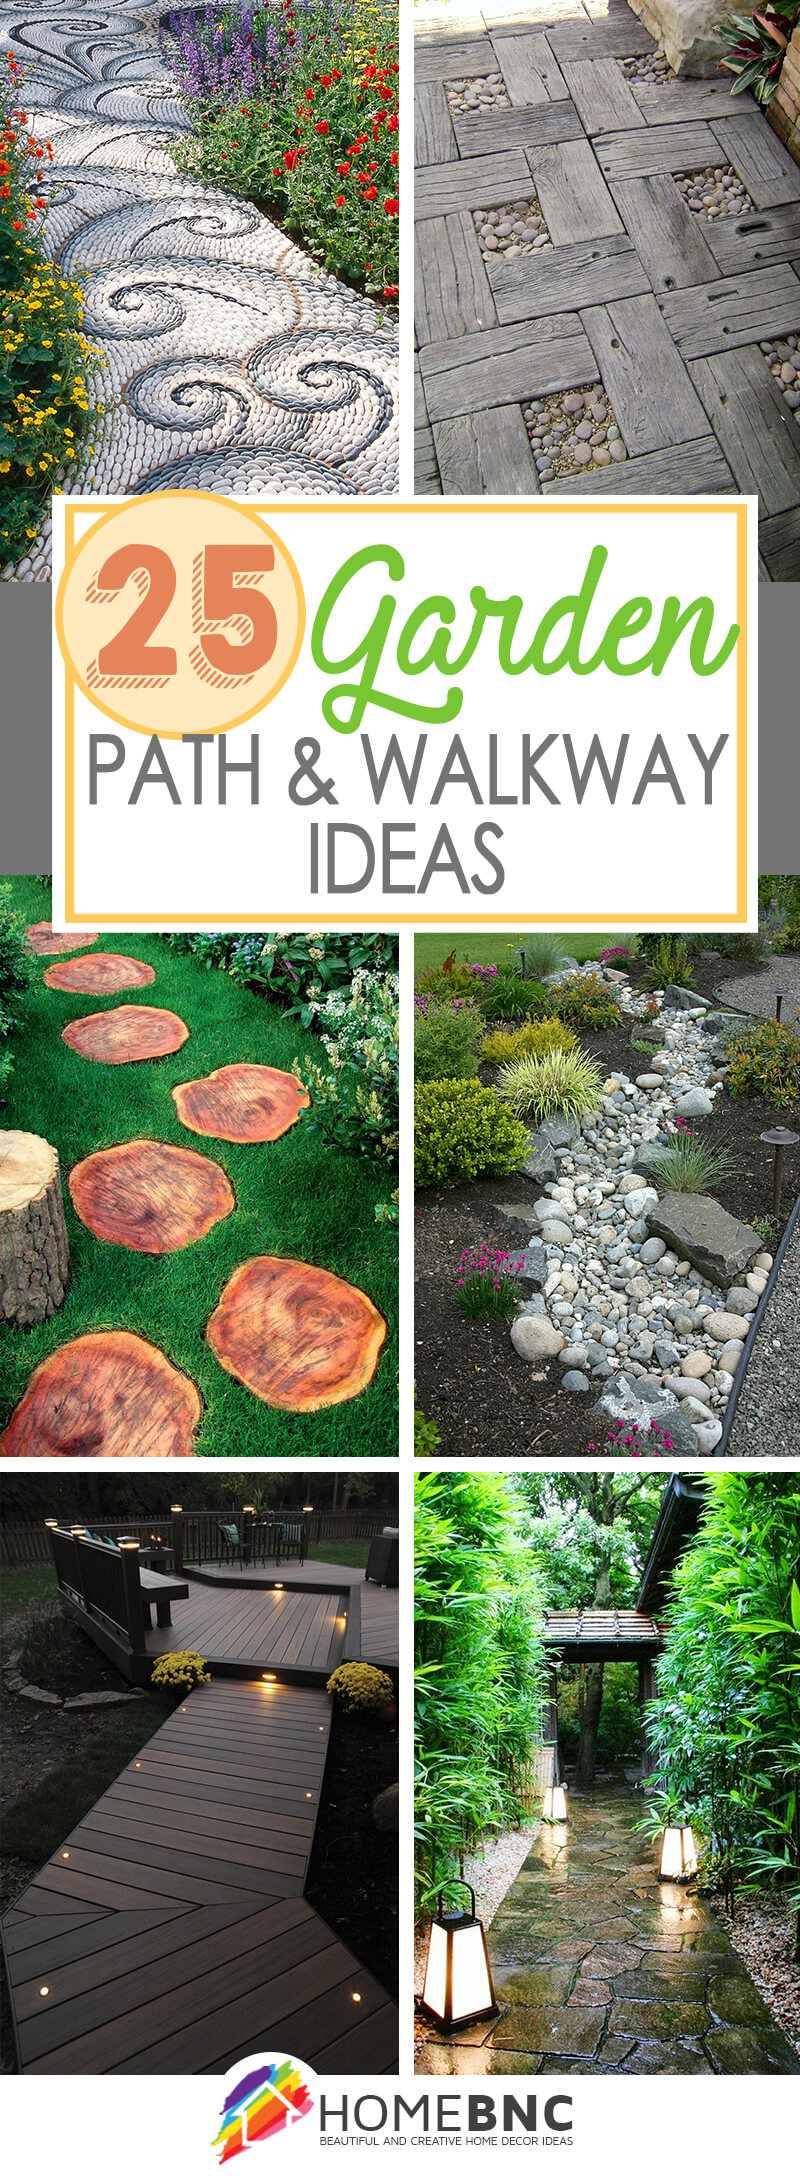 25 Best Garden Path and Walkway Ideas and Designs for 2021